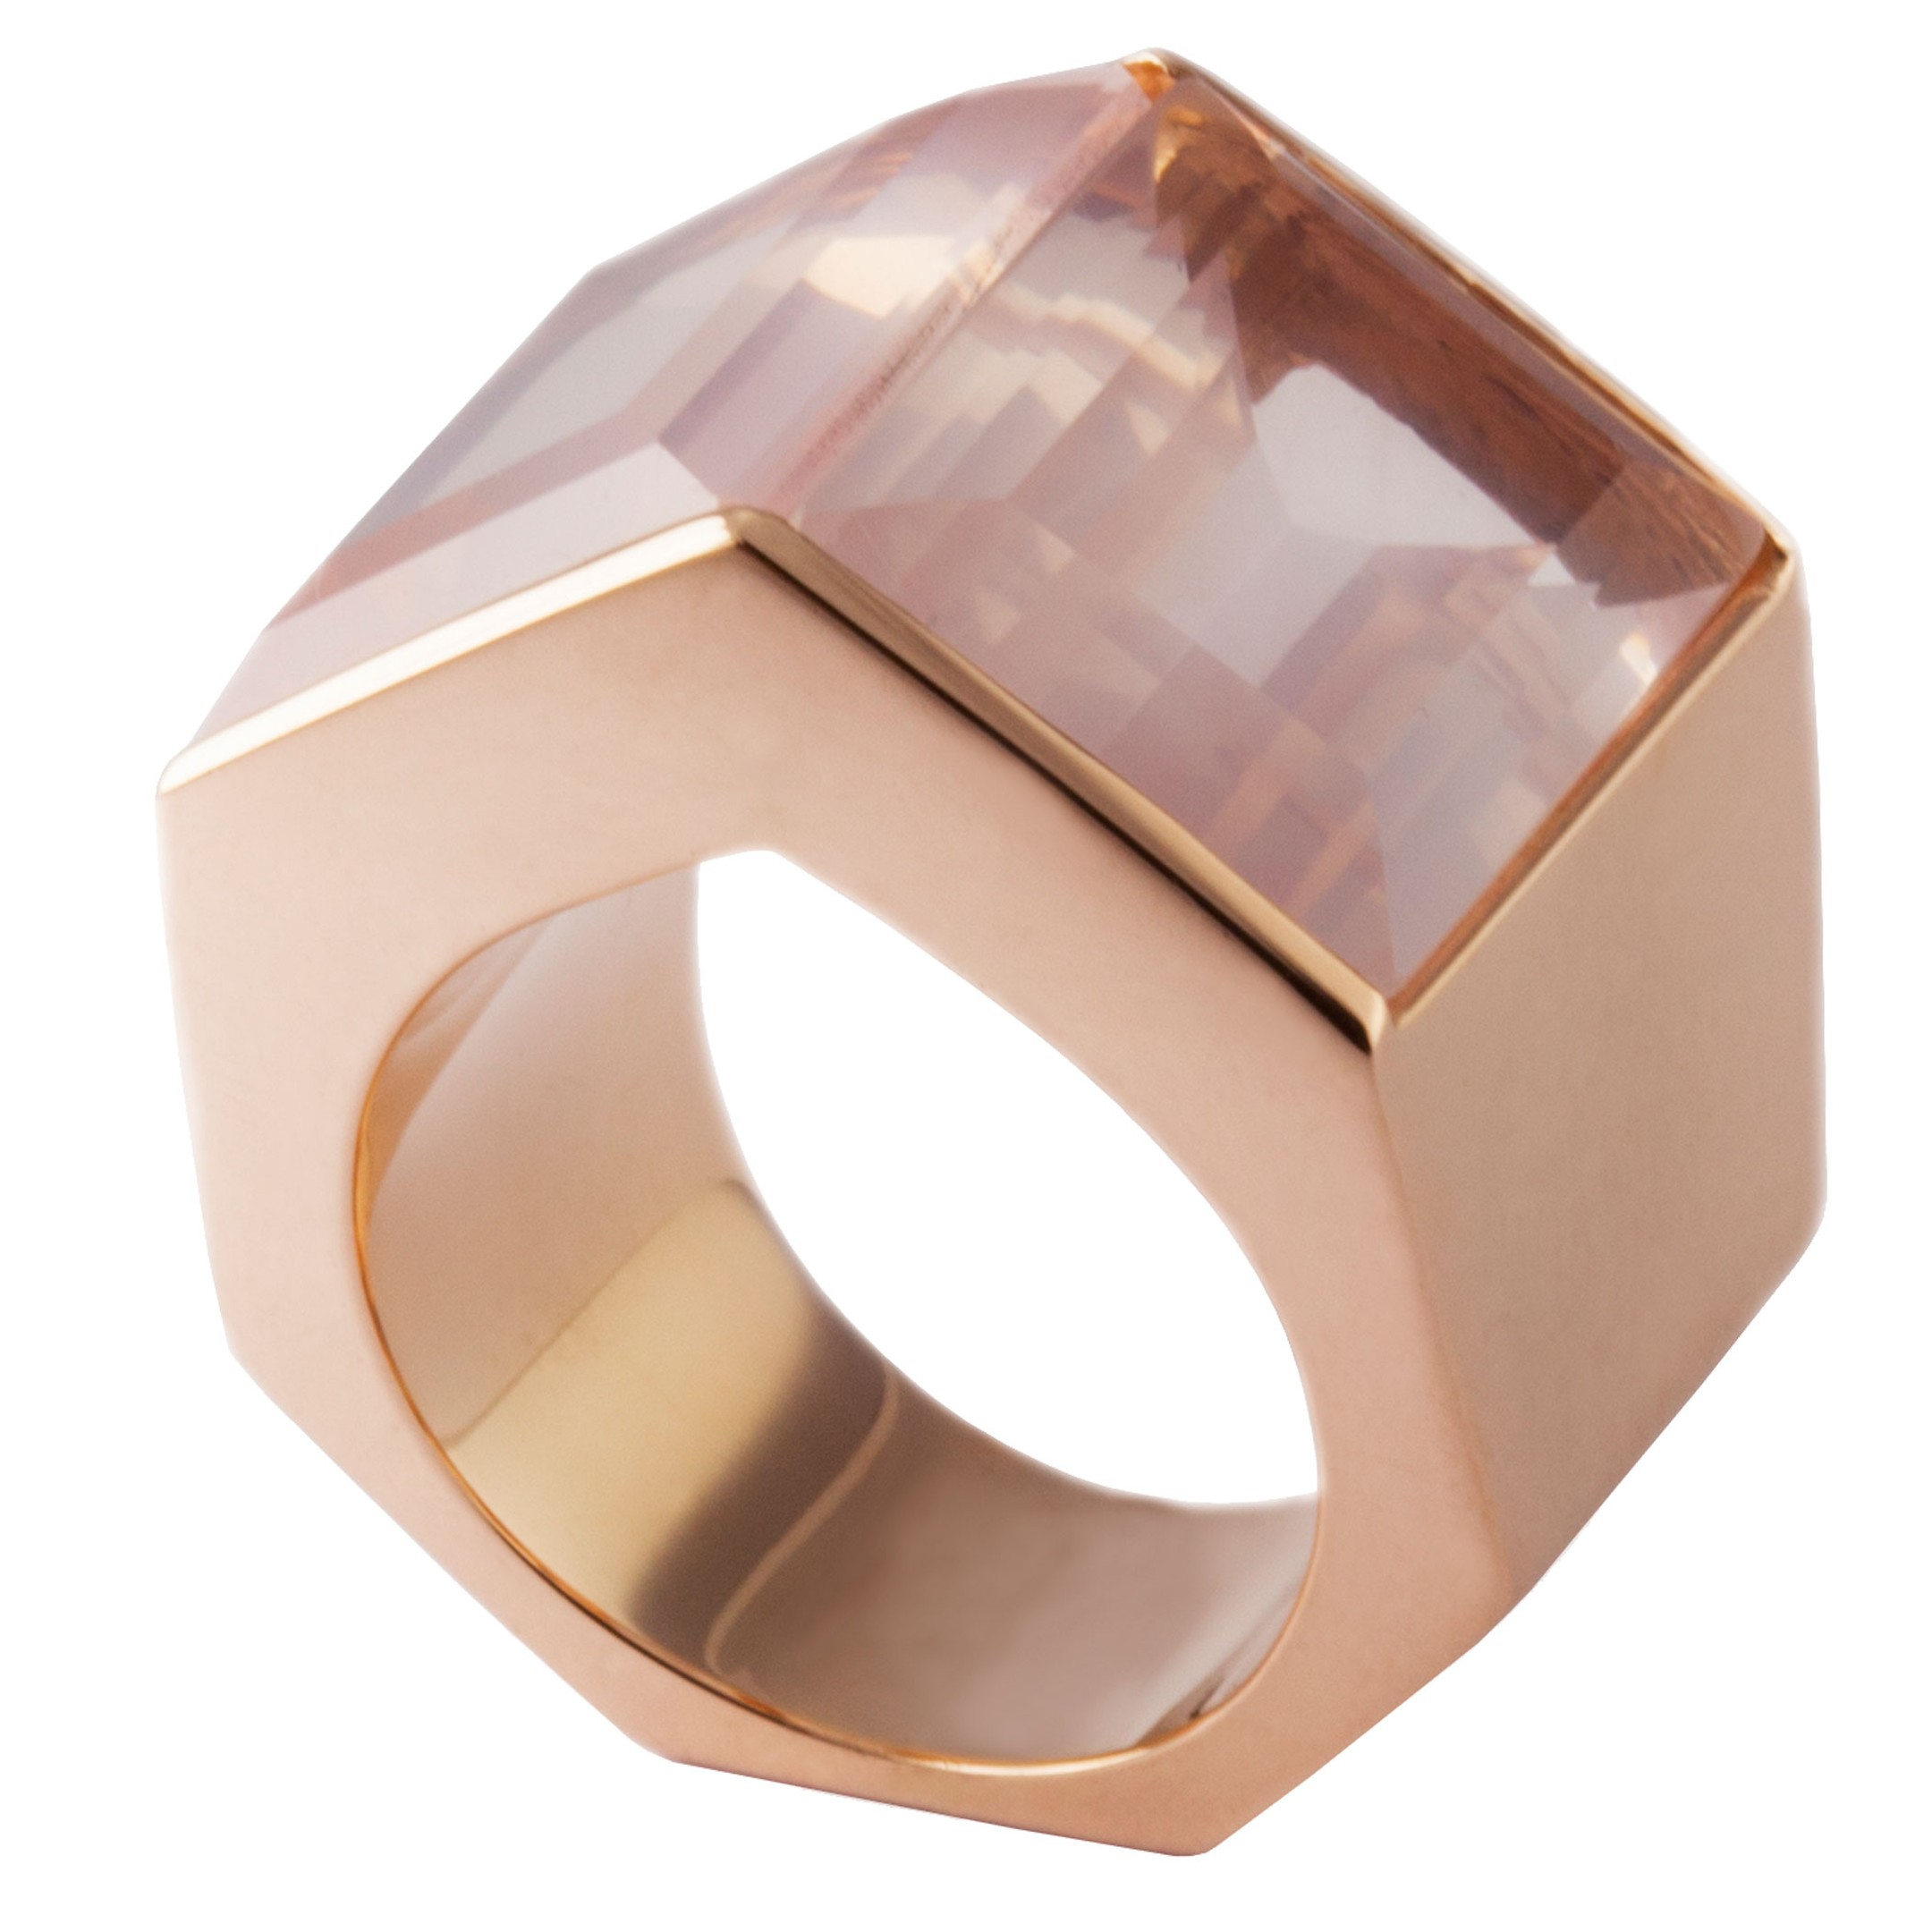 Kattri Polygon Tall rose gold and rose quartz ring_zoom